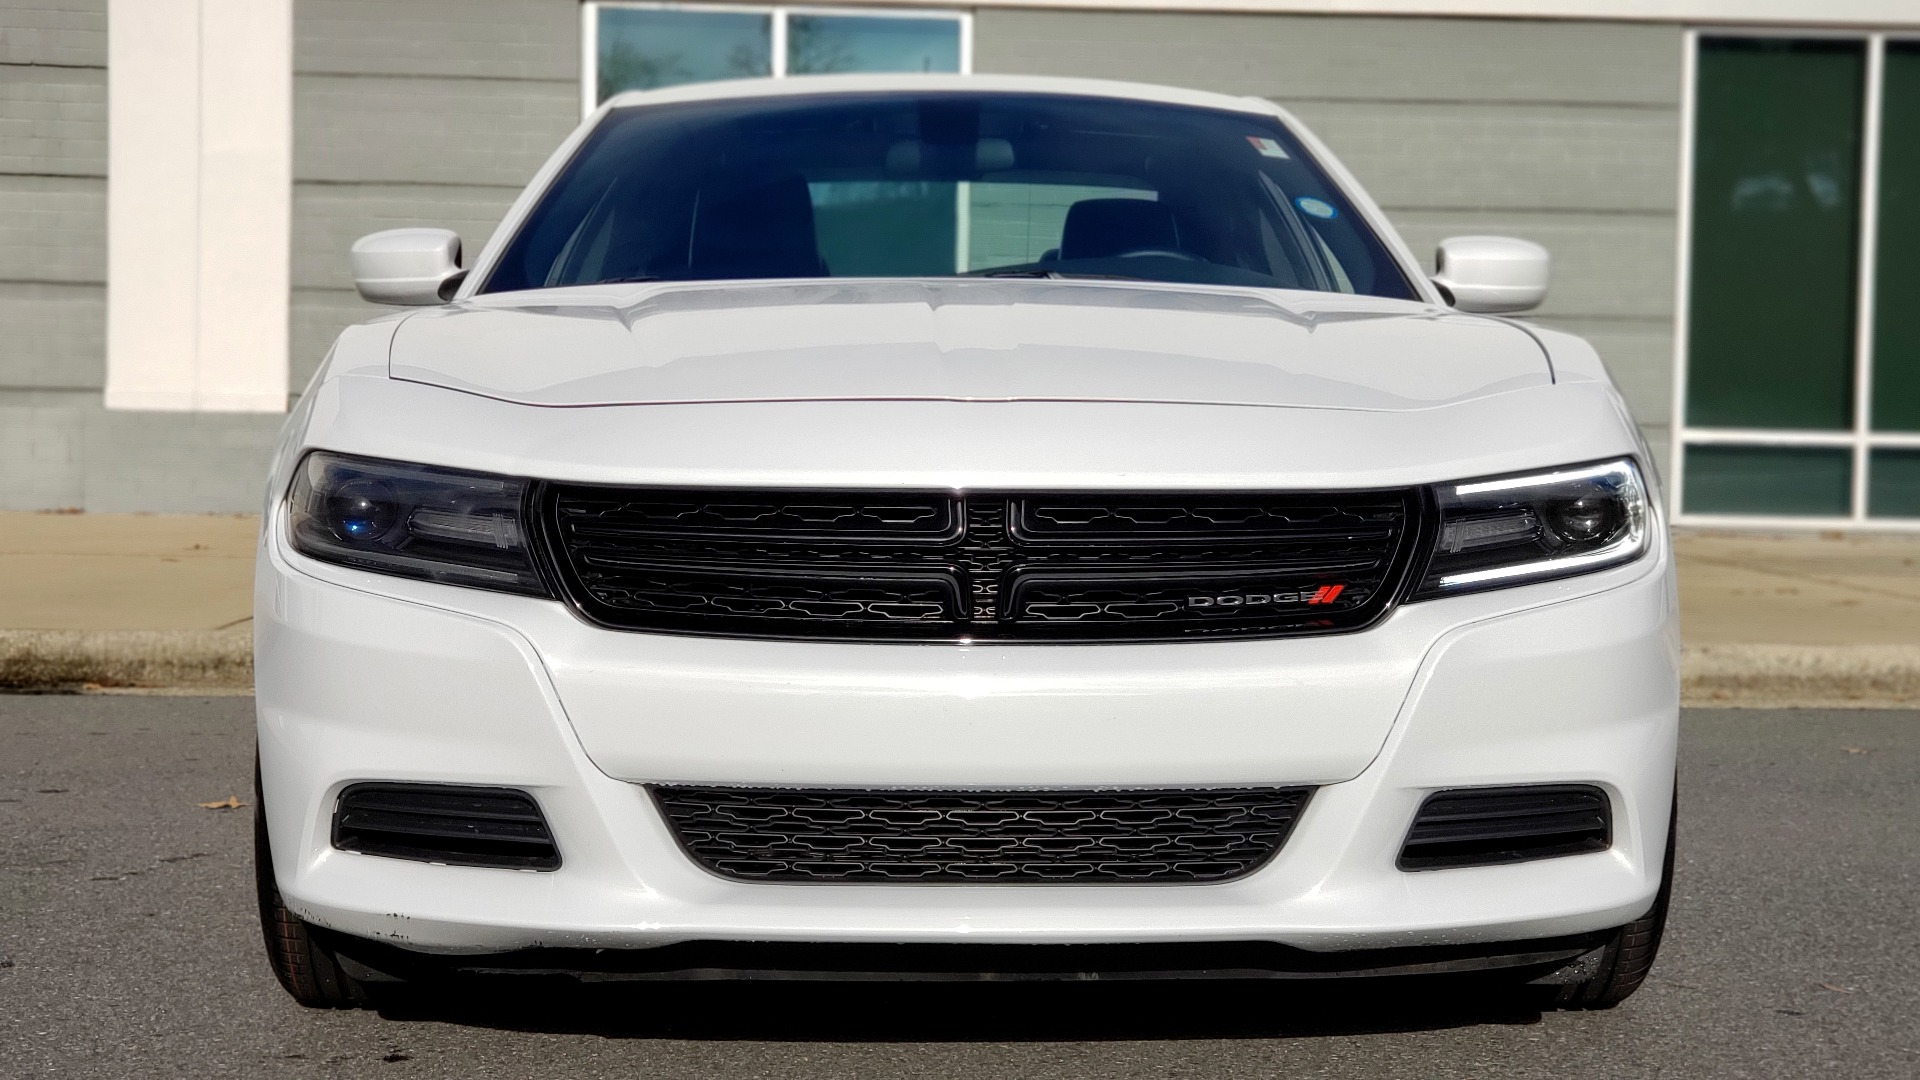 Used 2020 Dodge CHARGER SXT / RWD / V6 / 8-SPD AUTO / LTHR / HTD STS / SUNROOF / REARVIEW for sale $25,995 at Formula Imports in Charlotte NC 28227 18